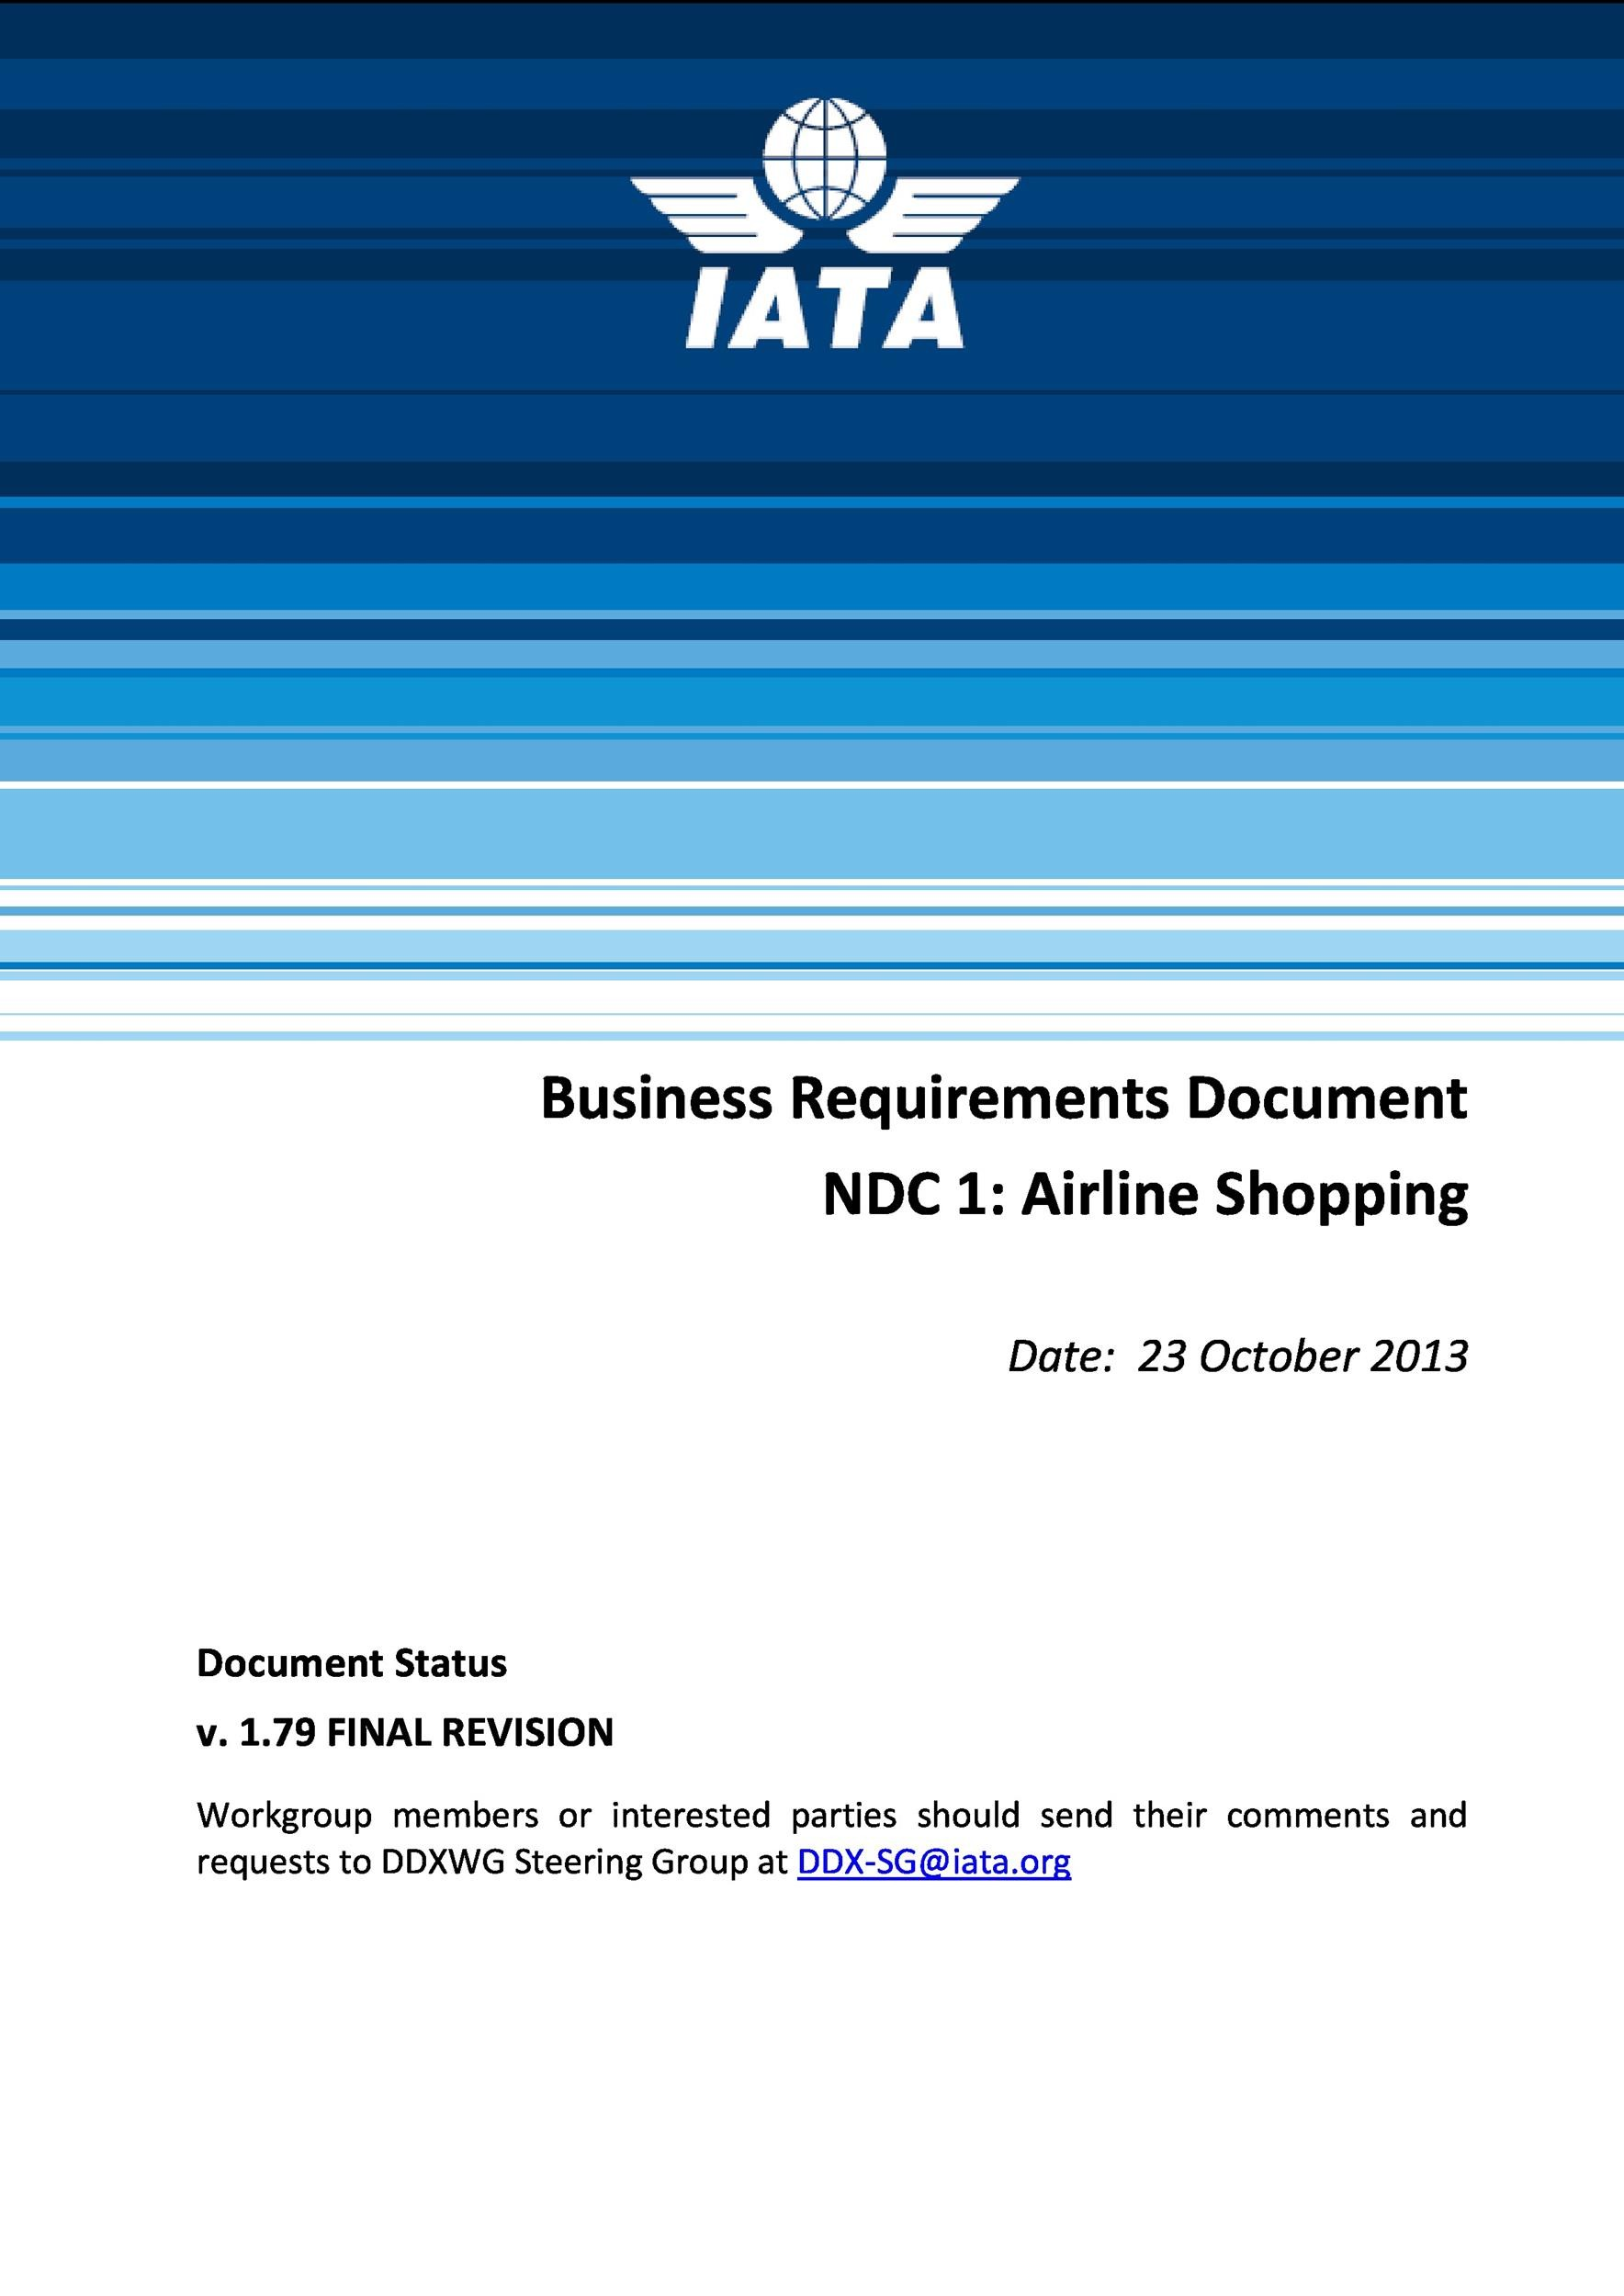 40 simple business requirements document templates template lab printable business requirements document template 40 accmission